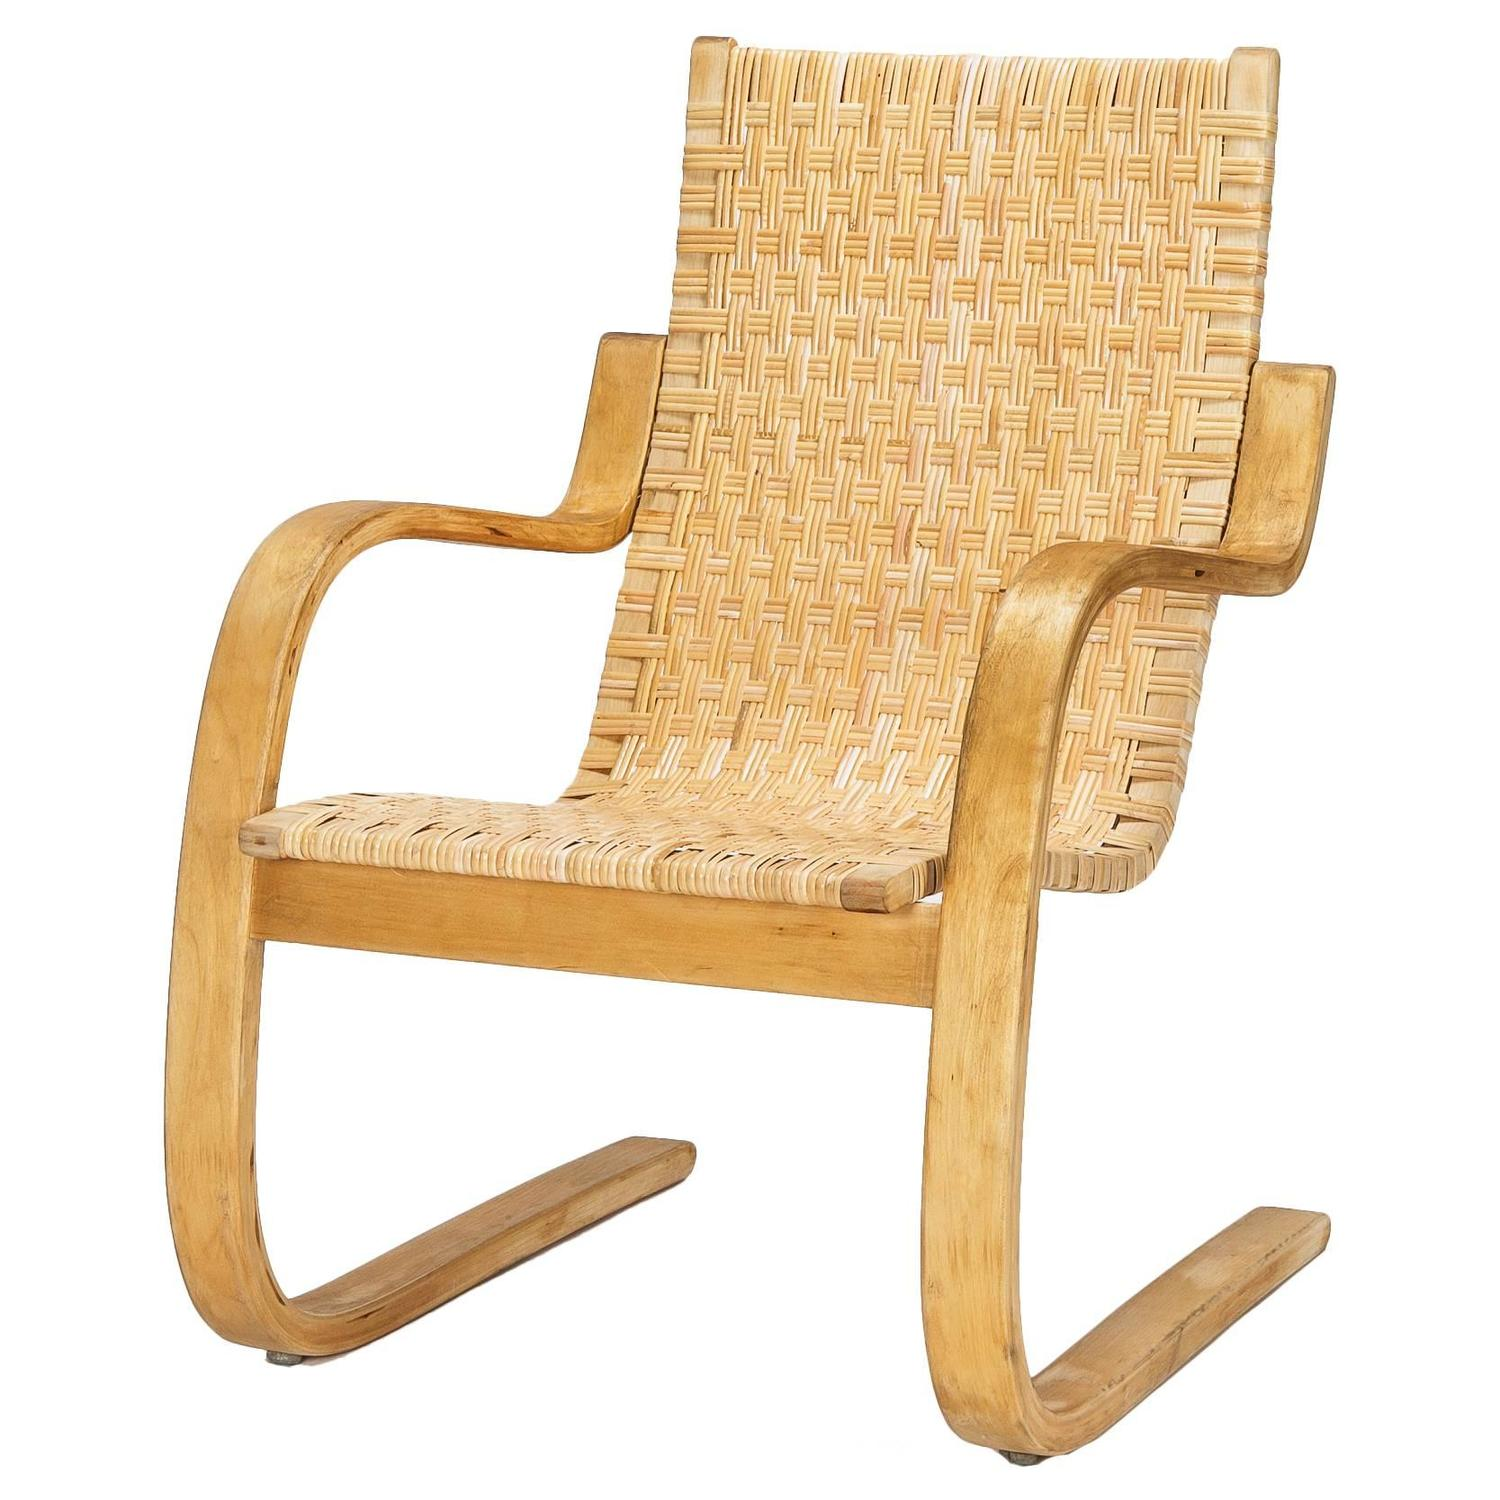 Aalto Chair Alvar Aalto Cantilever Chair 406 By Artek In Birch And